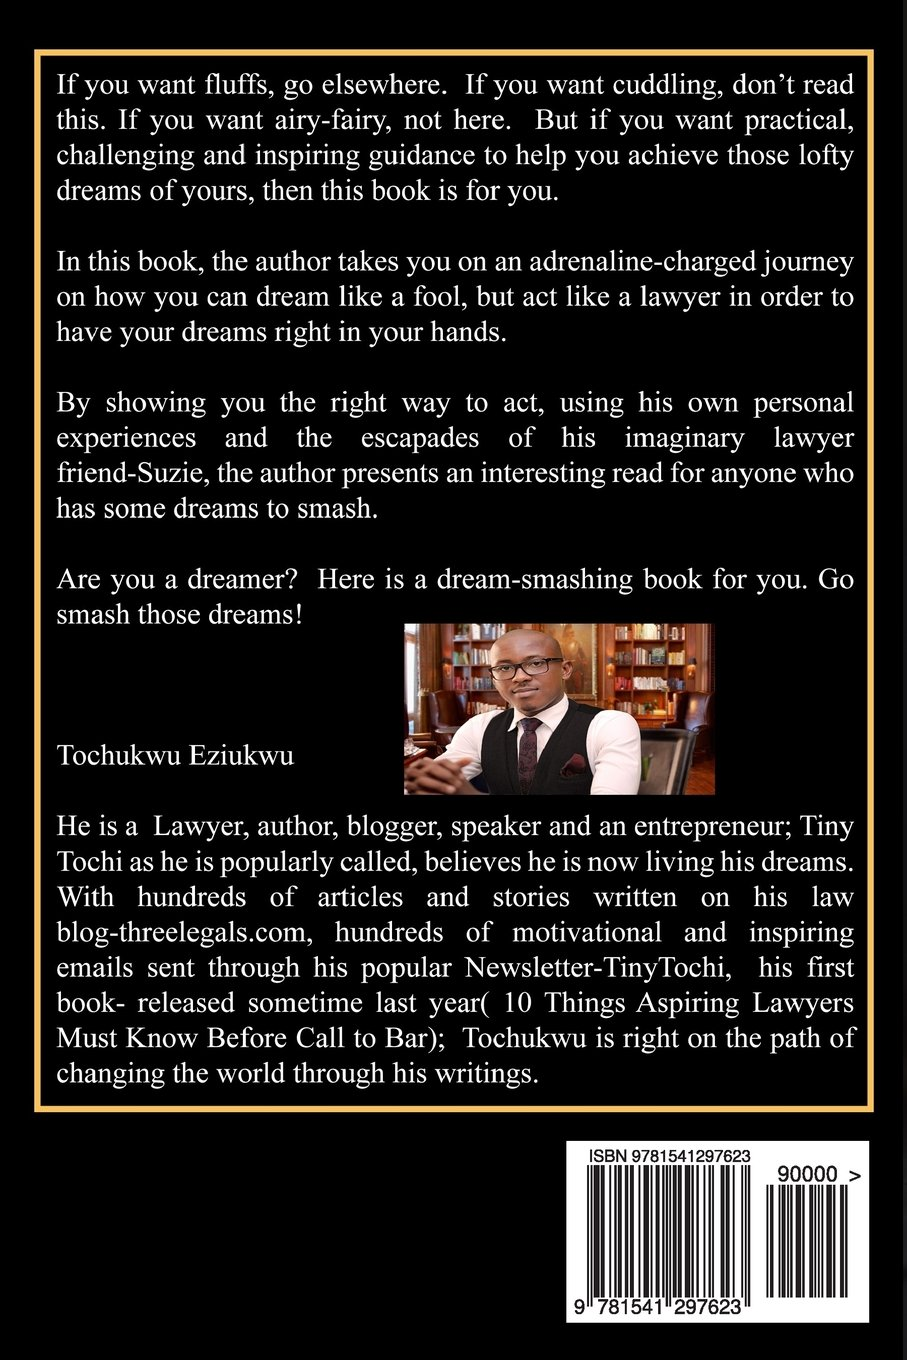 Dream Like A Fool, Act Like a Lawyer: A Lawyer's Approach to